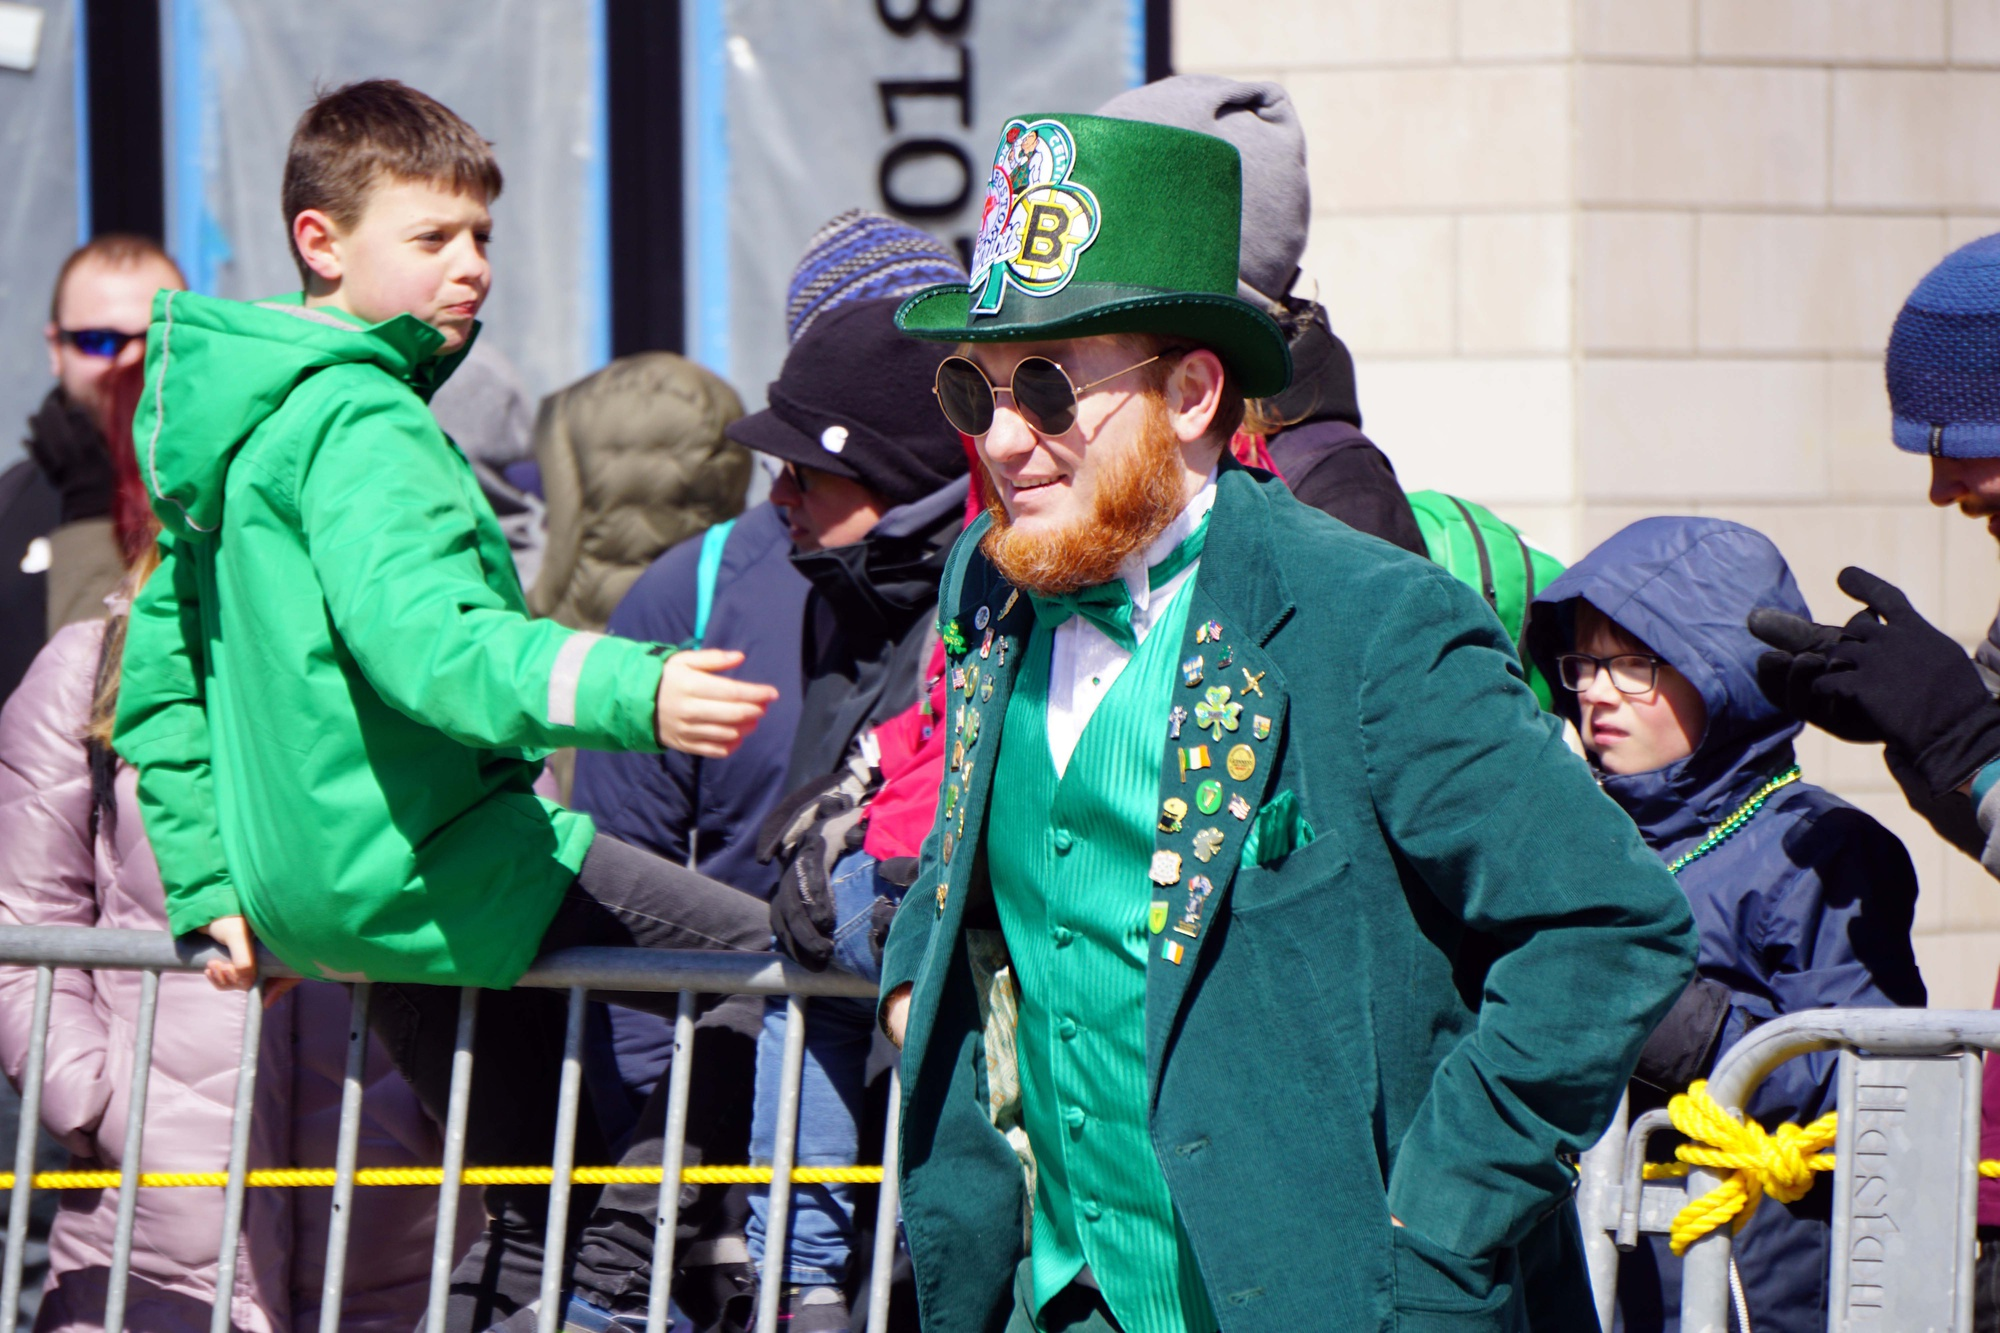 A leprechaun shows off his Boston pride.